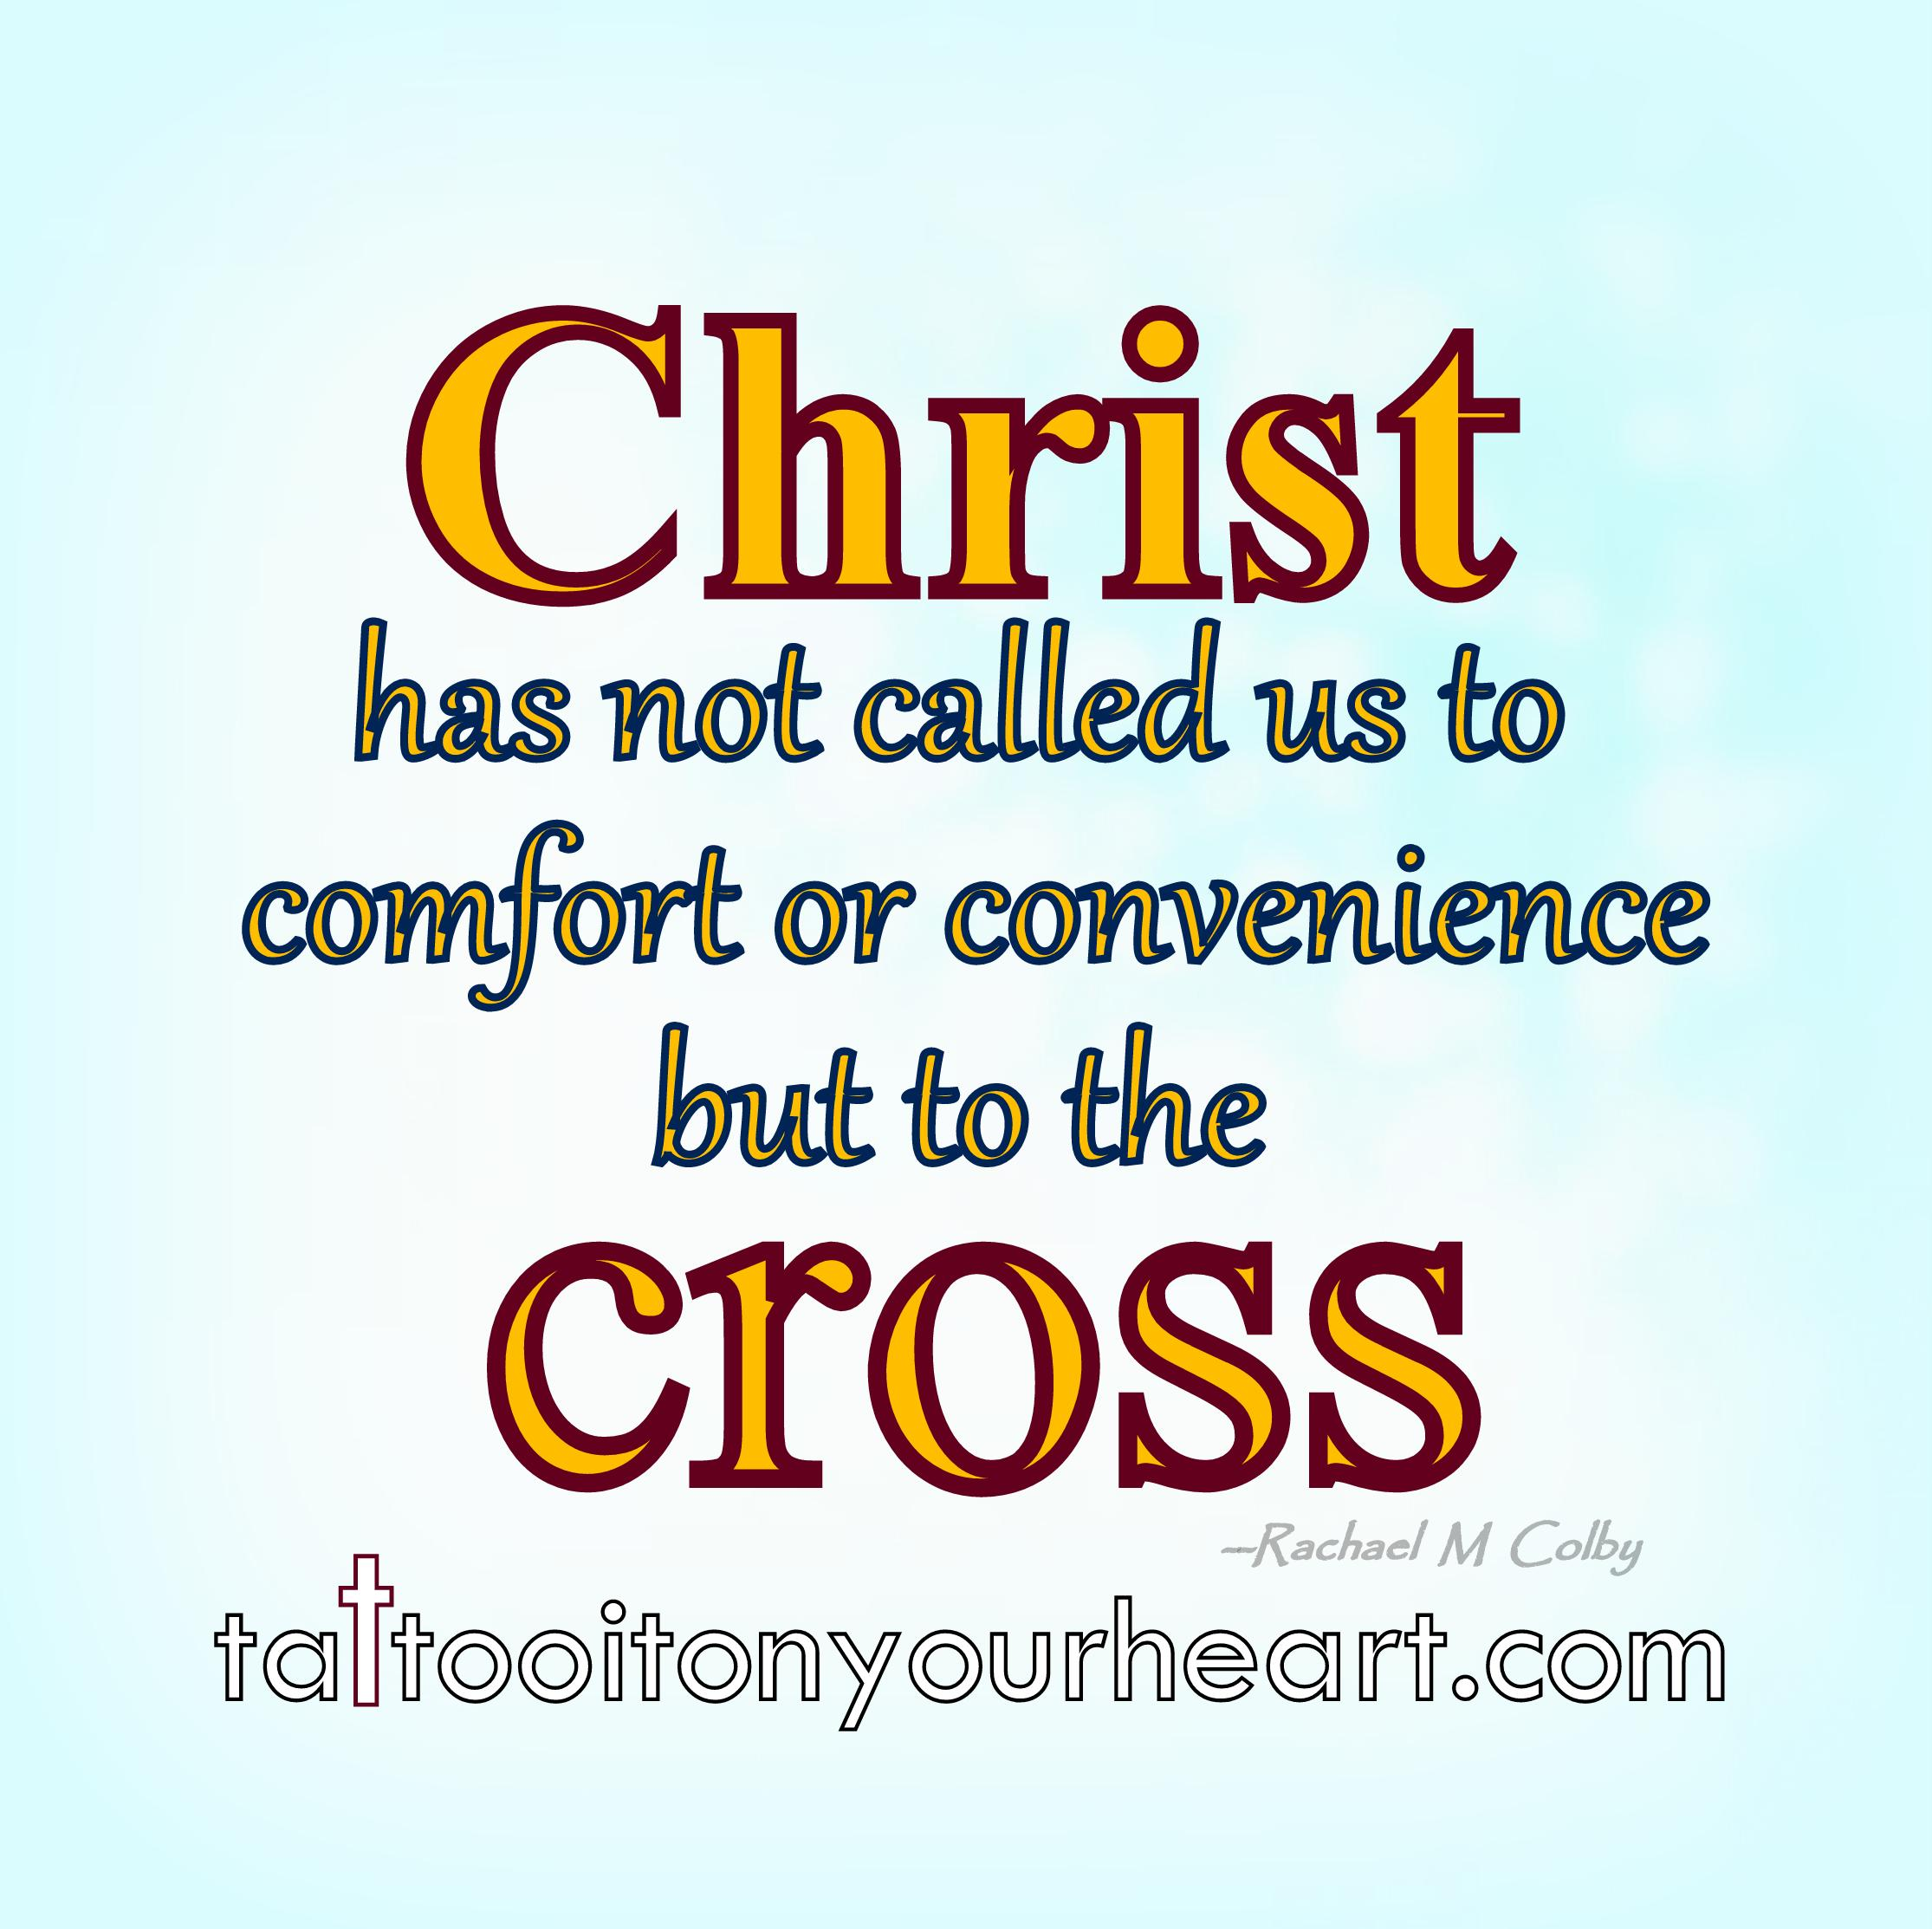 Rachael_M_Colby_Tattoo_it_On_Your_Heart_Christ_has _not_called _us_to_comfort_or_convenience-but_to_the_cross